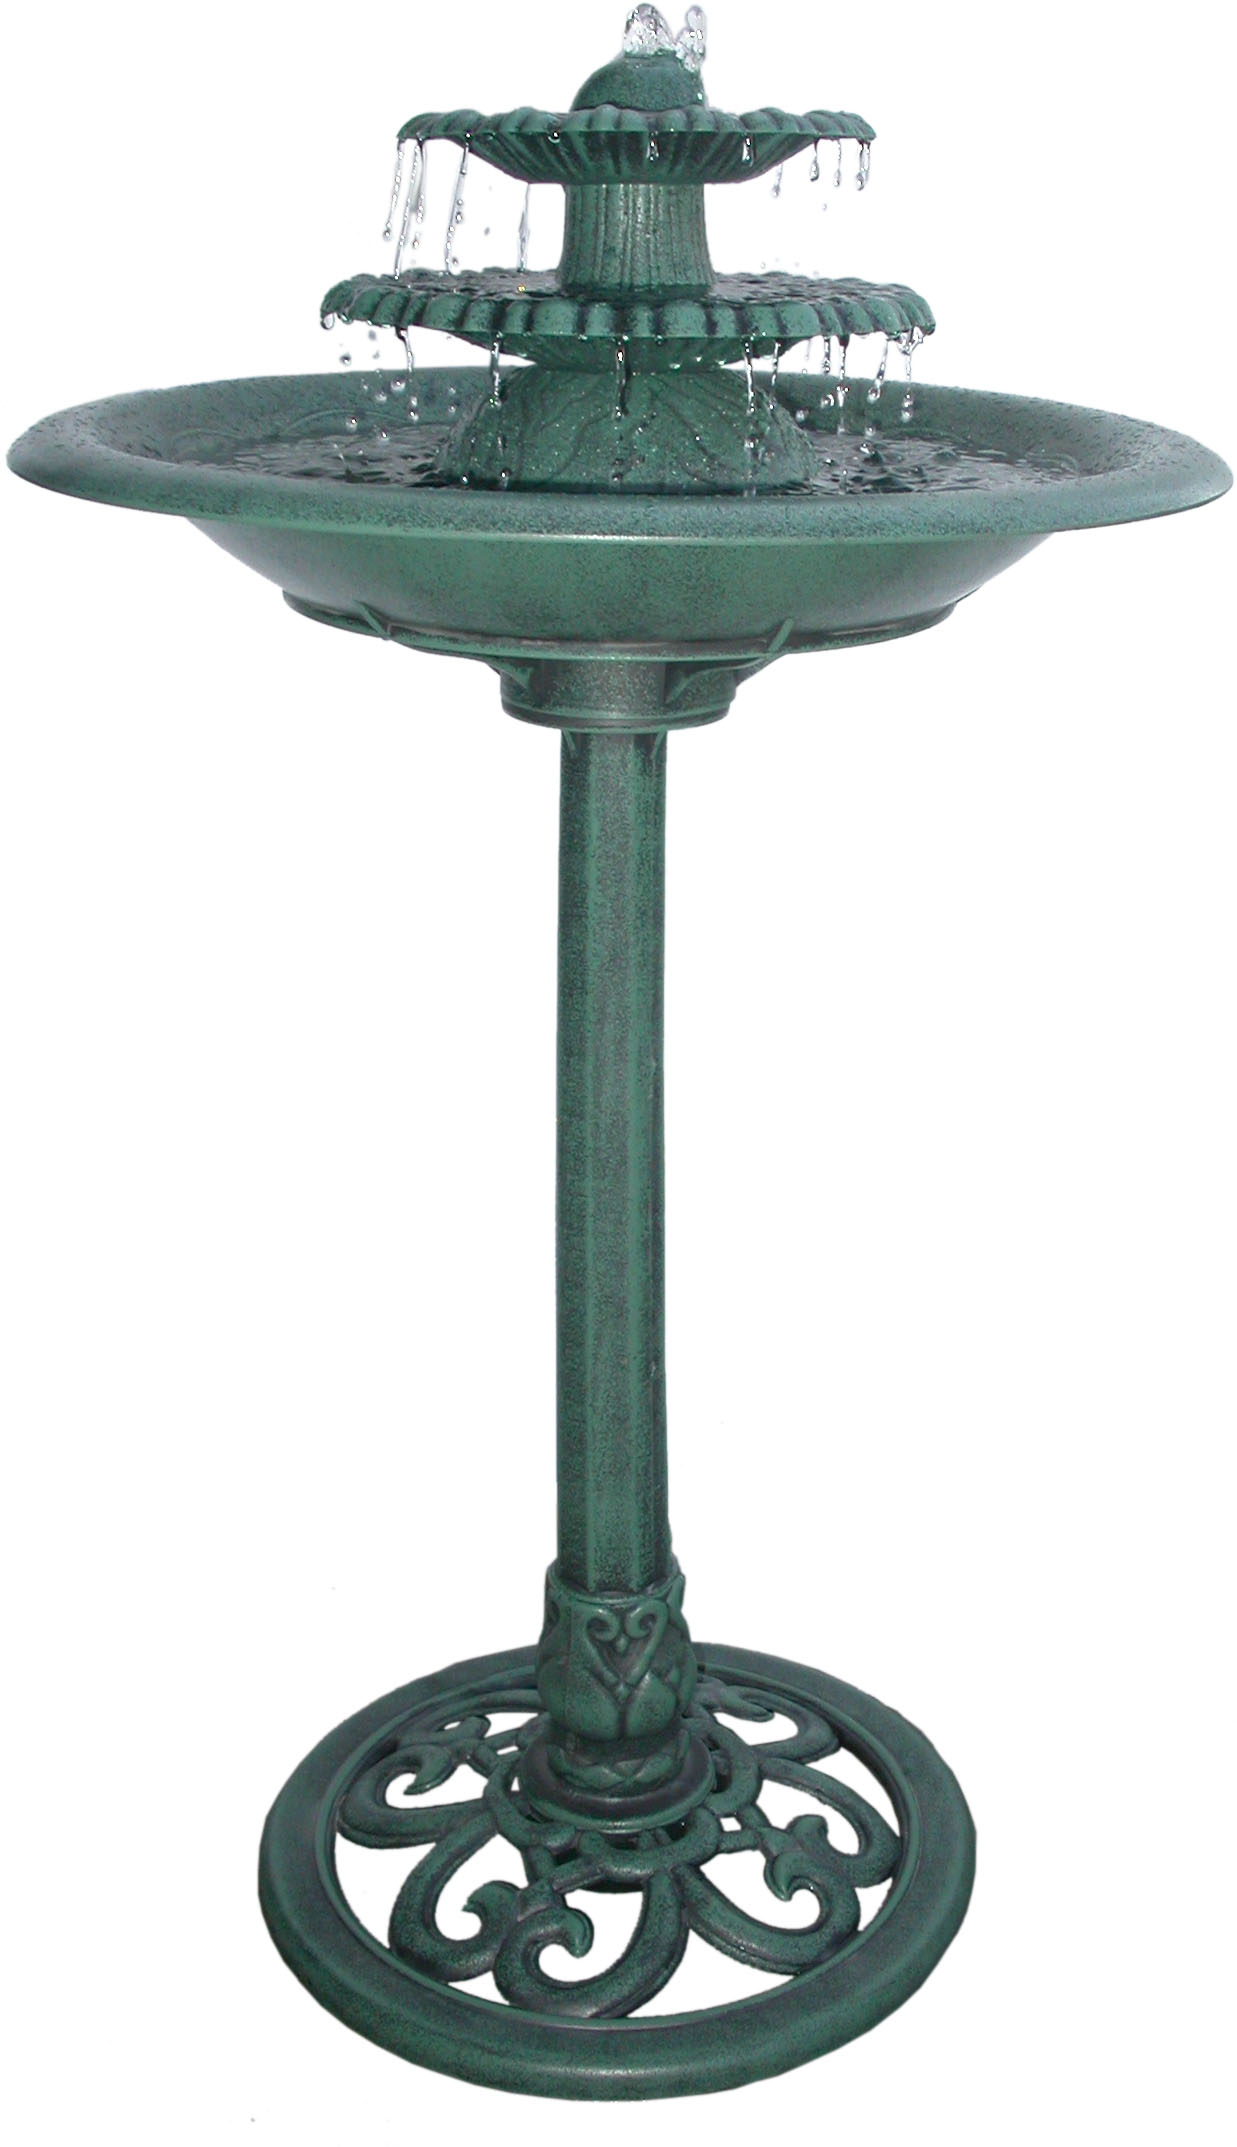 36 Inch Tiered Pedestal Fountain Birdbath by Benzara